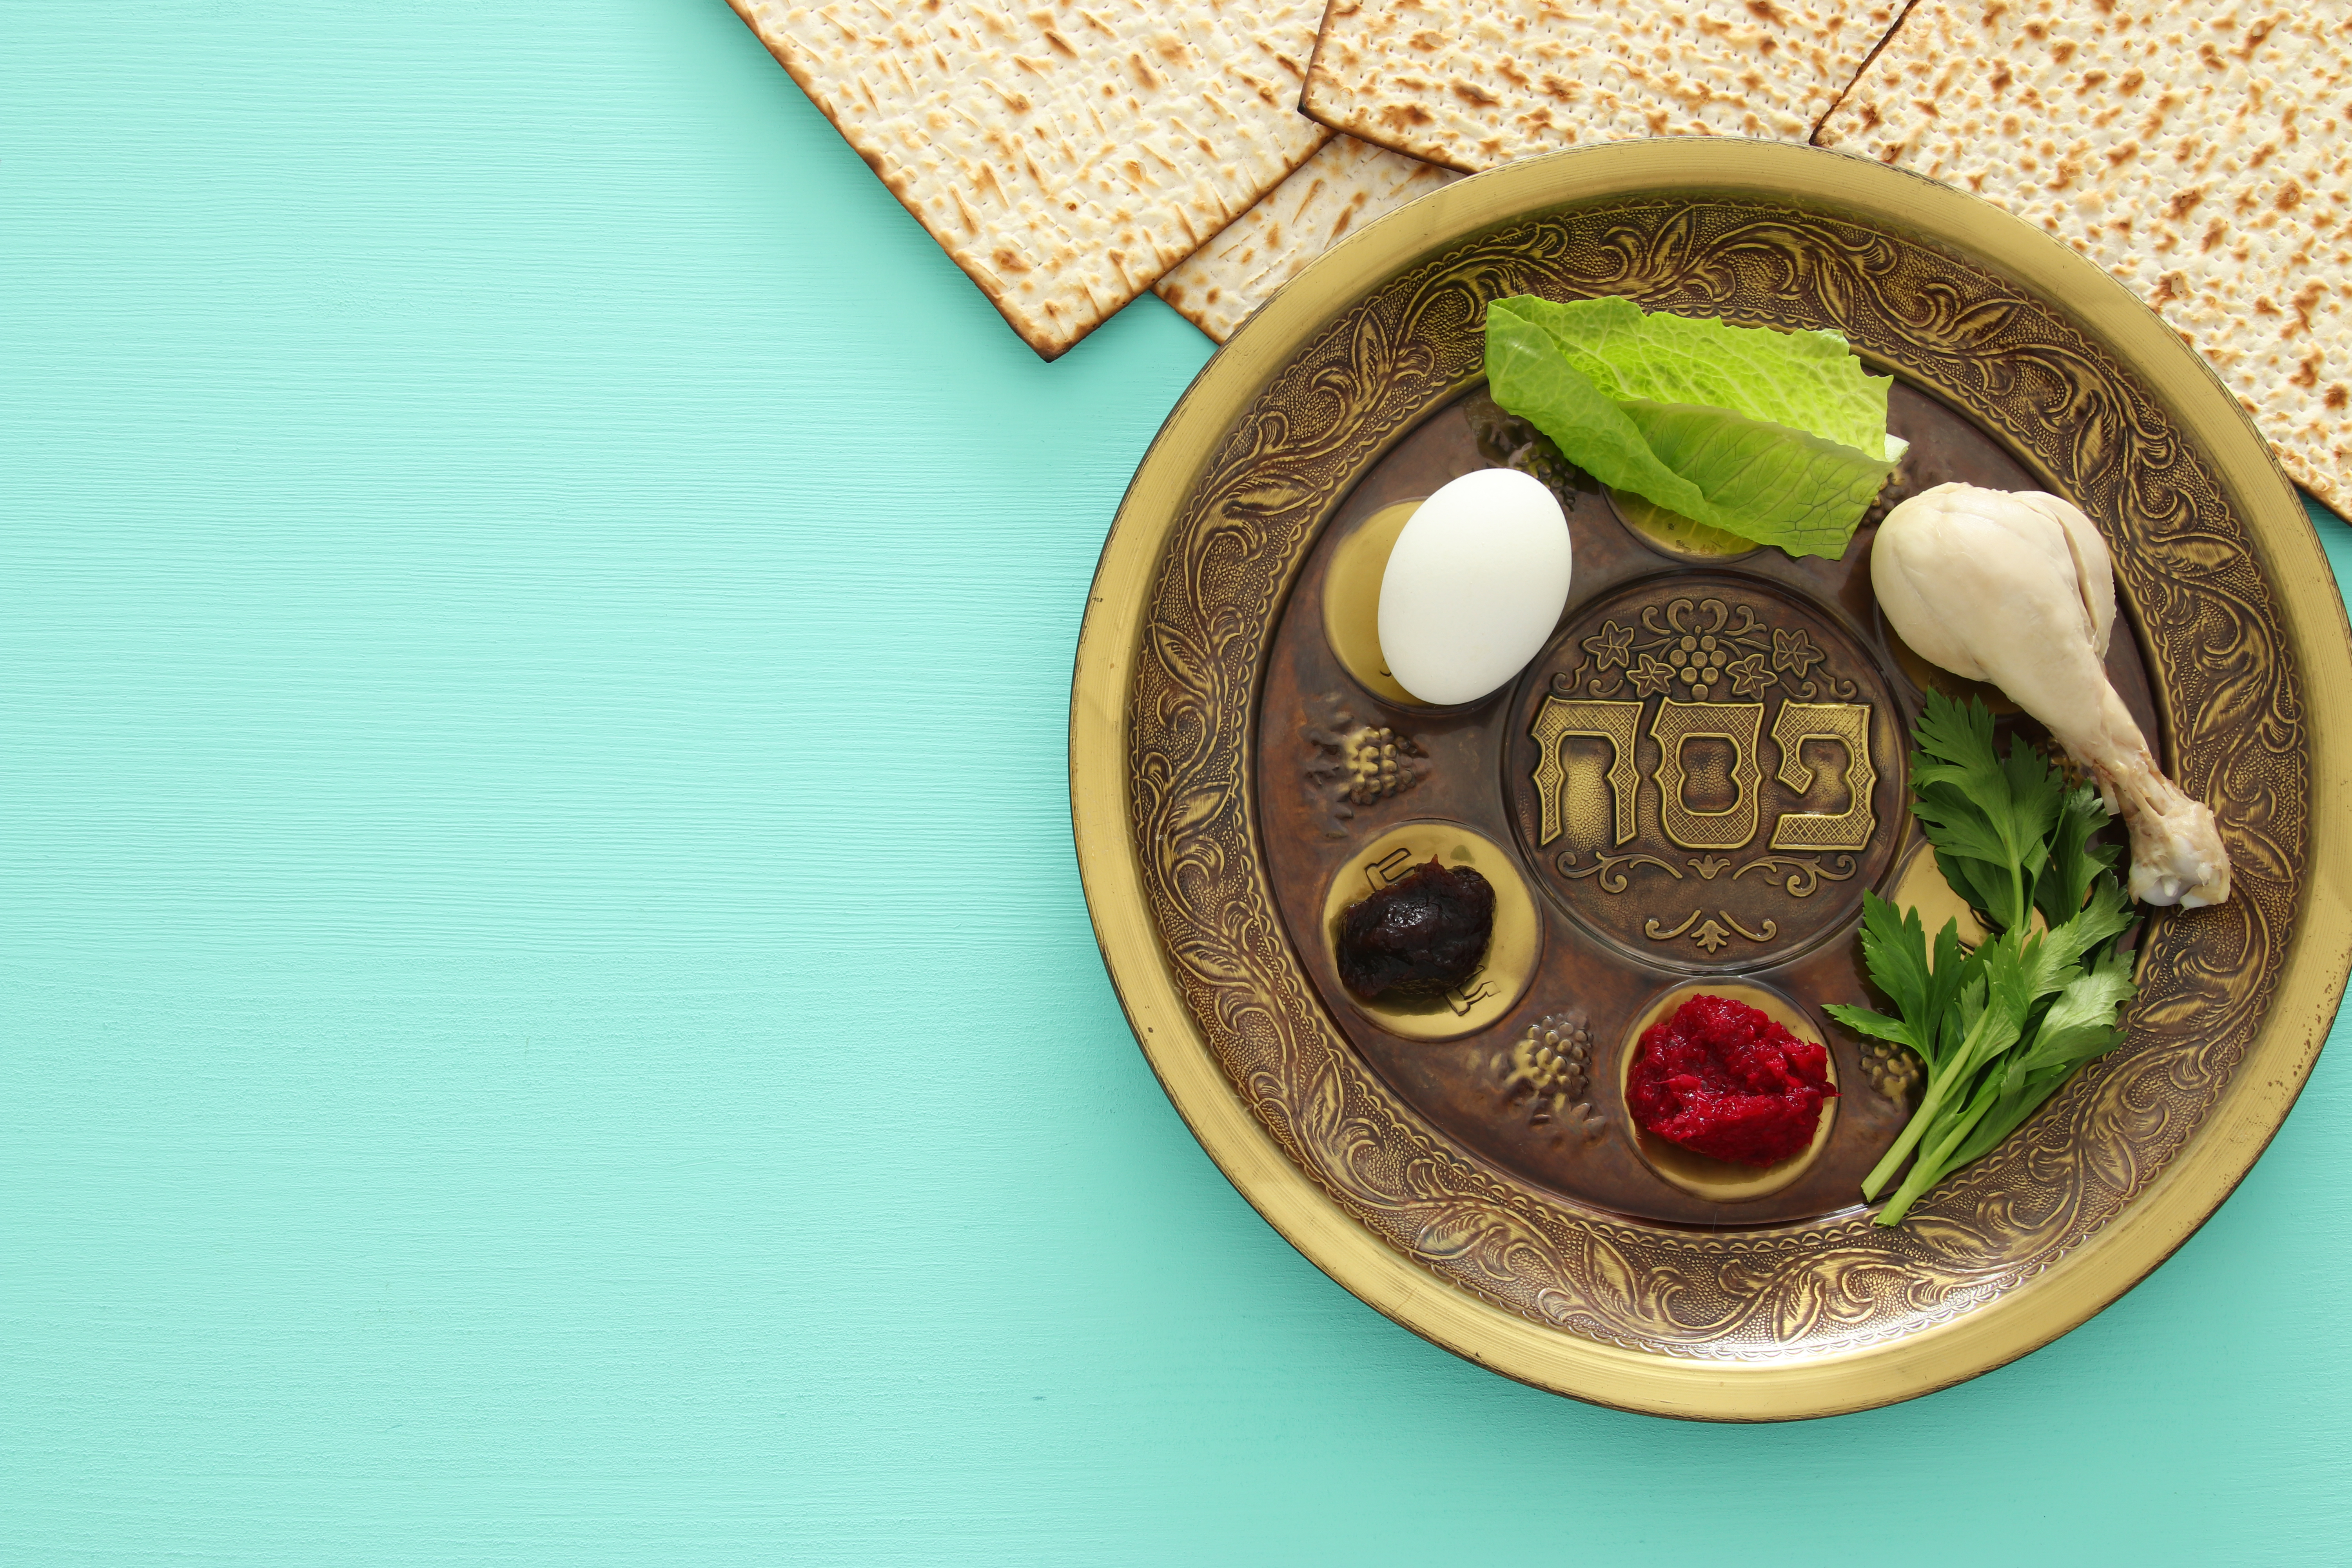 A seder plate with traditional horseradish, celery, egg, bone, maror, and charoset.